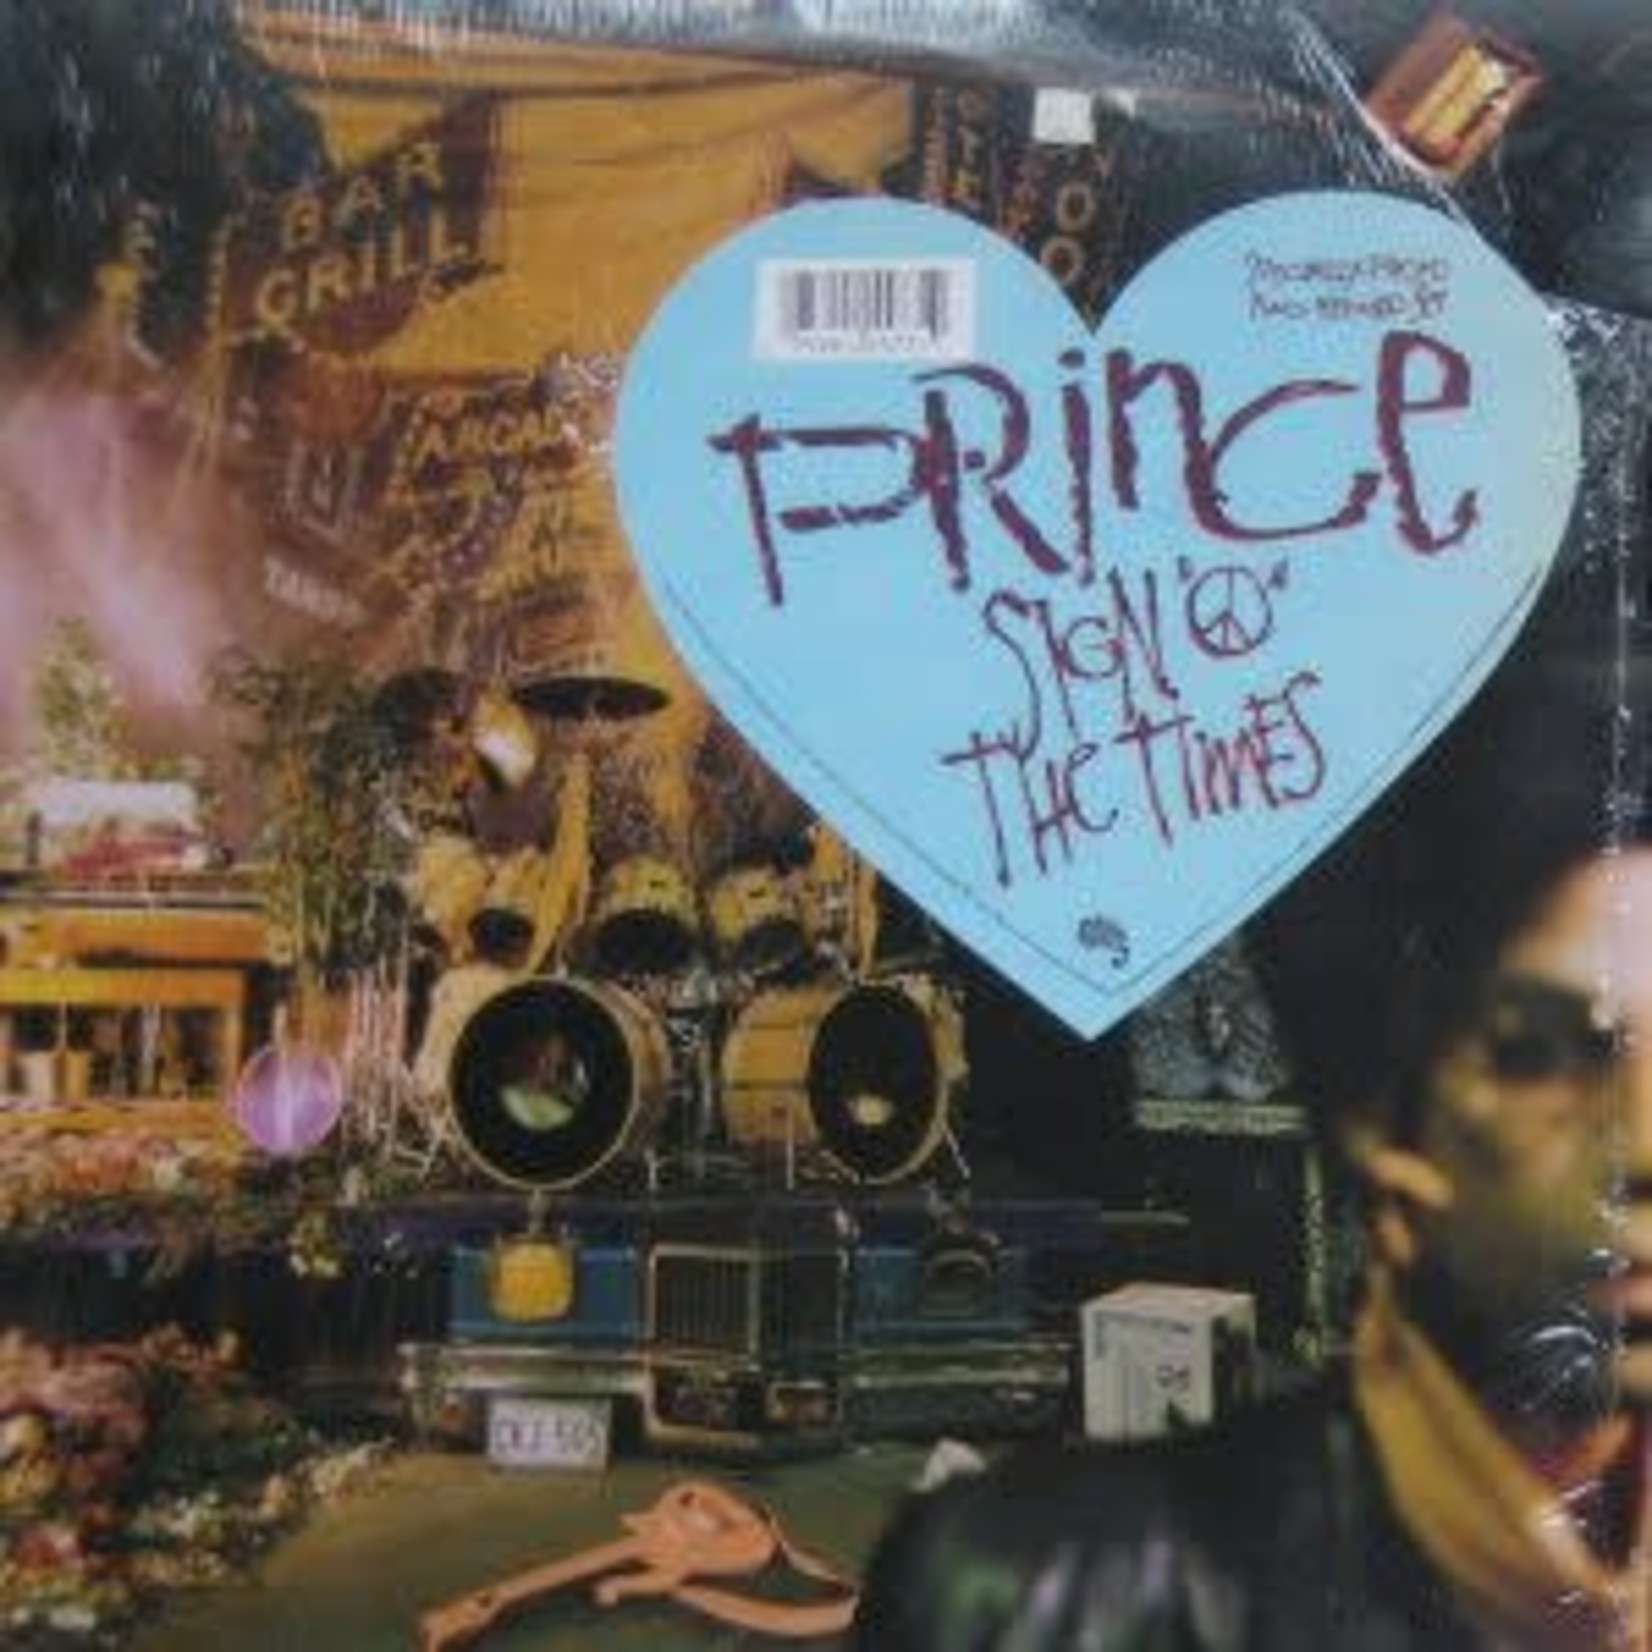 PRINCE-SIGN O' THE TIMES -HQ-  (VINYL)